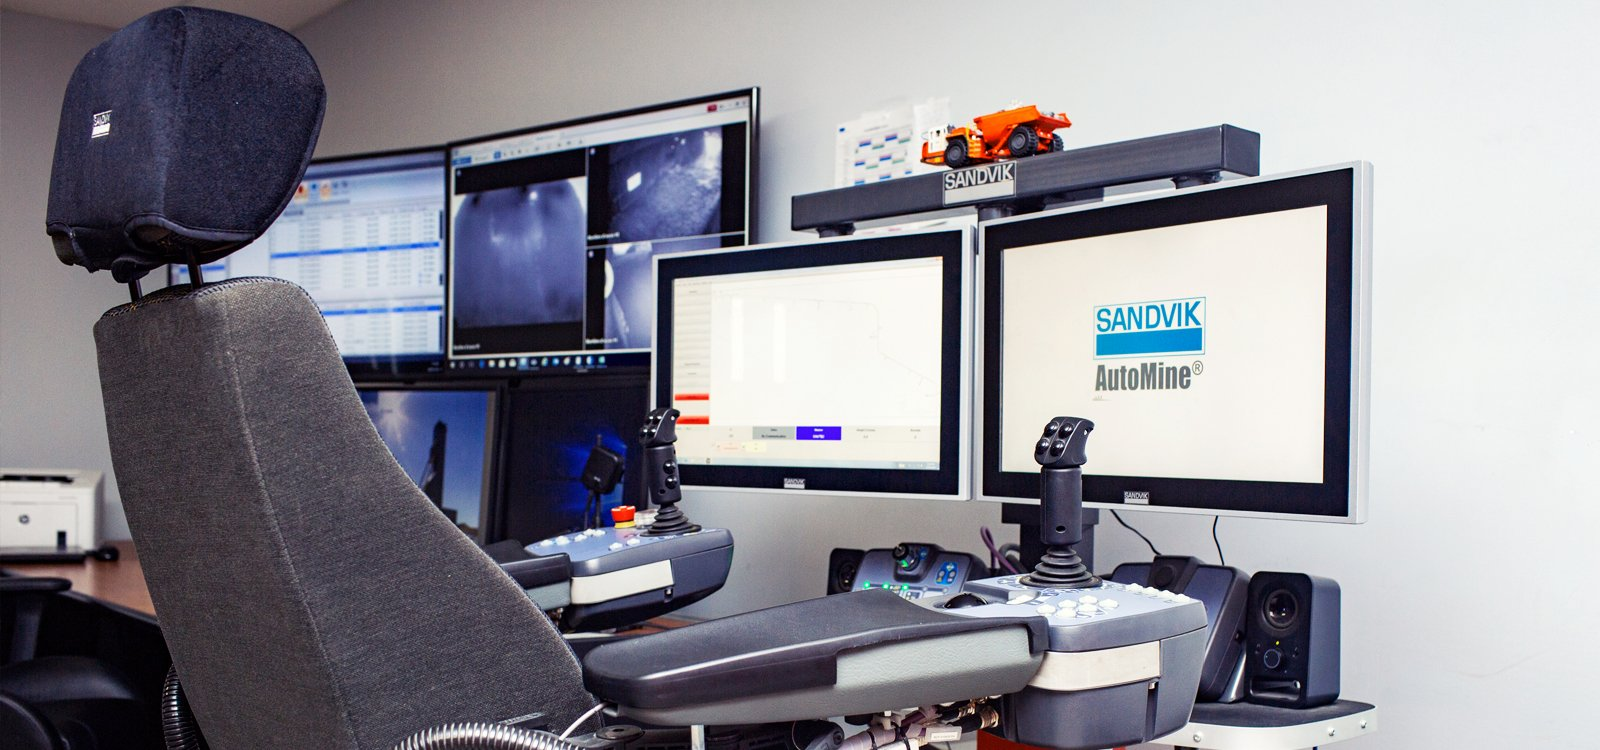 <p>From the comfort of the purpose-built control room, operators can control remotes for loading chutes and rock breakers.</p>